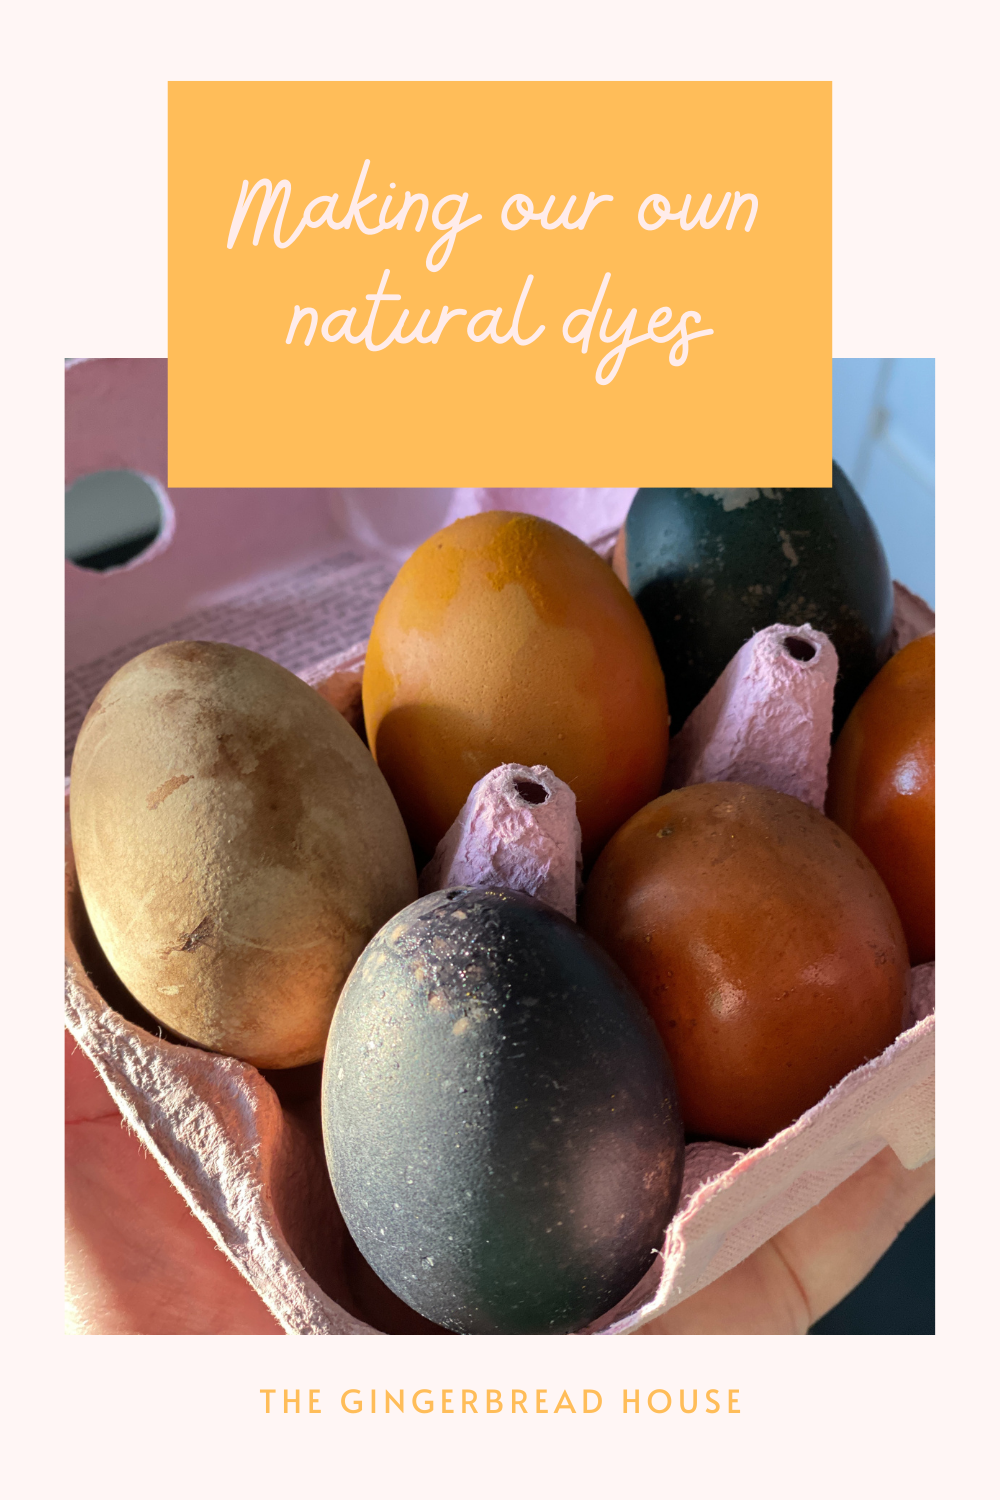 Making our own natural dyes